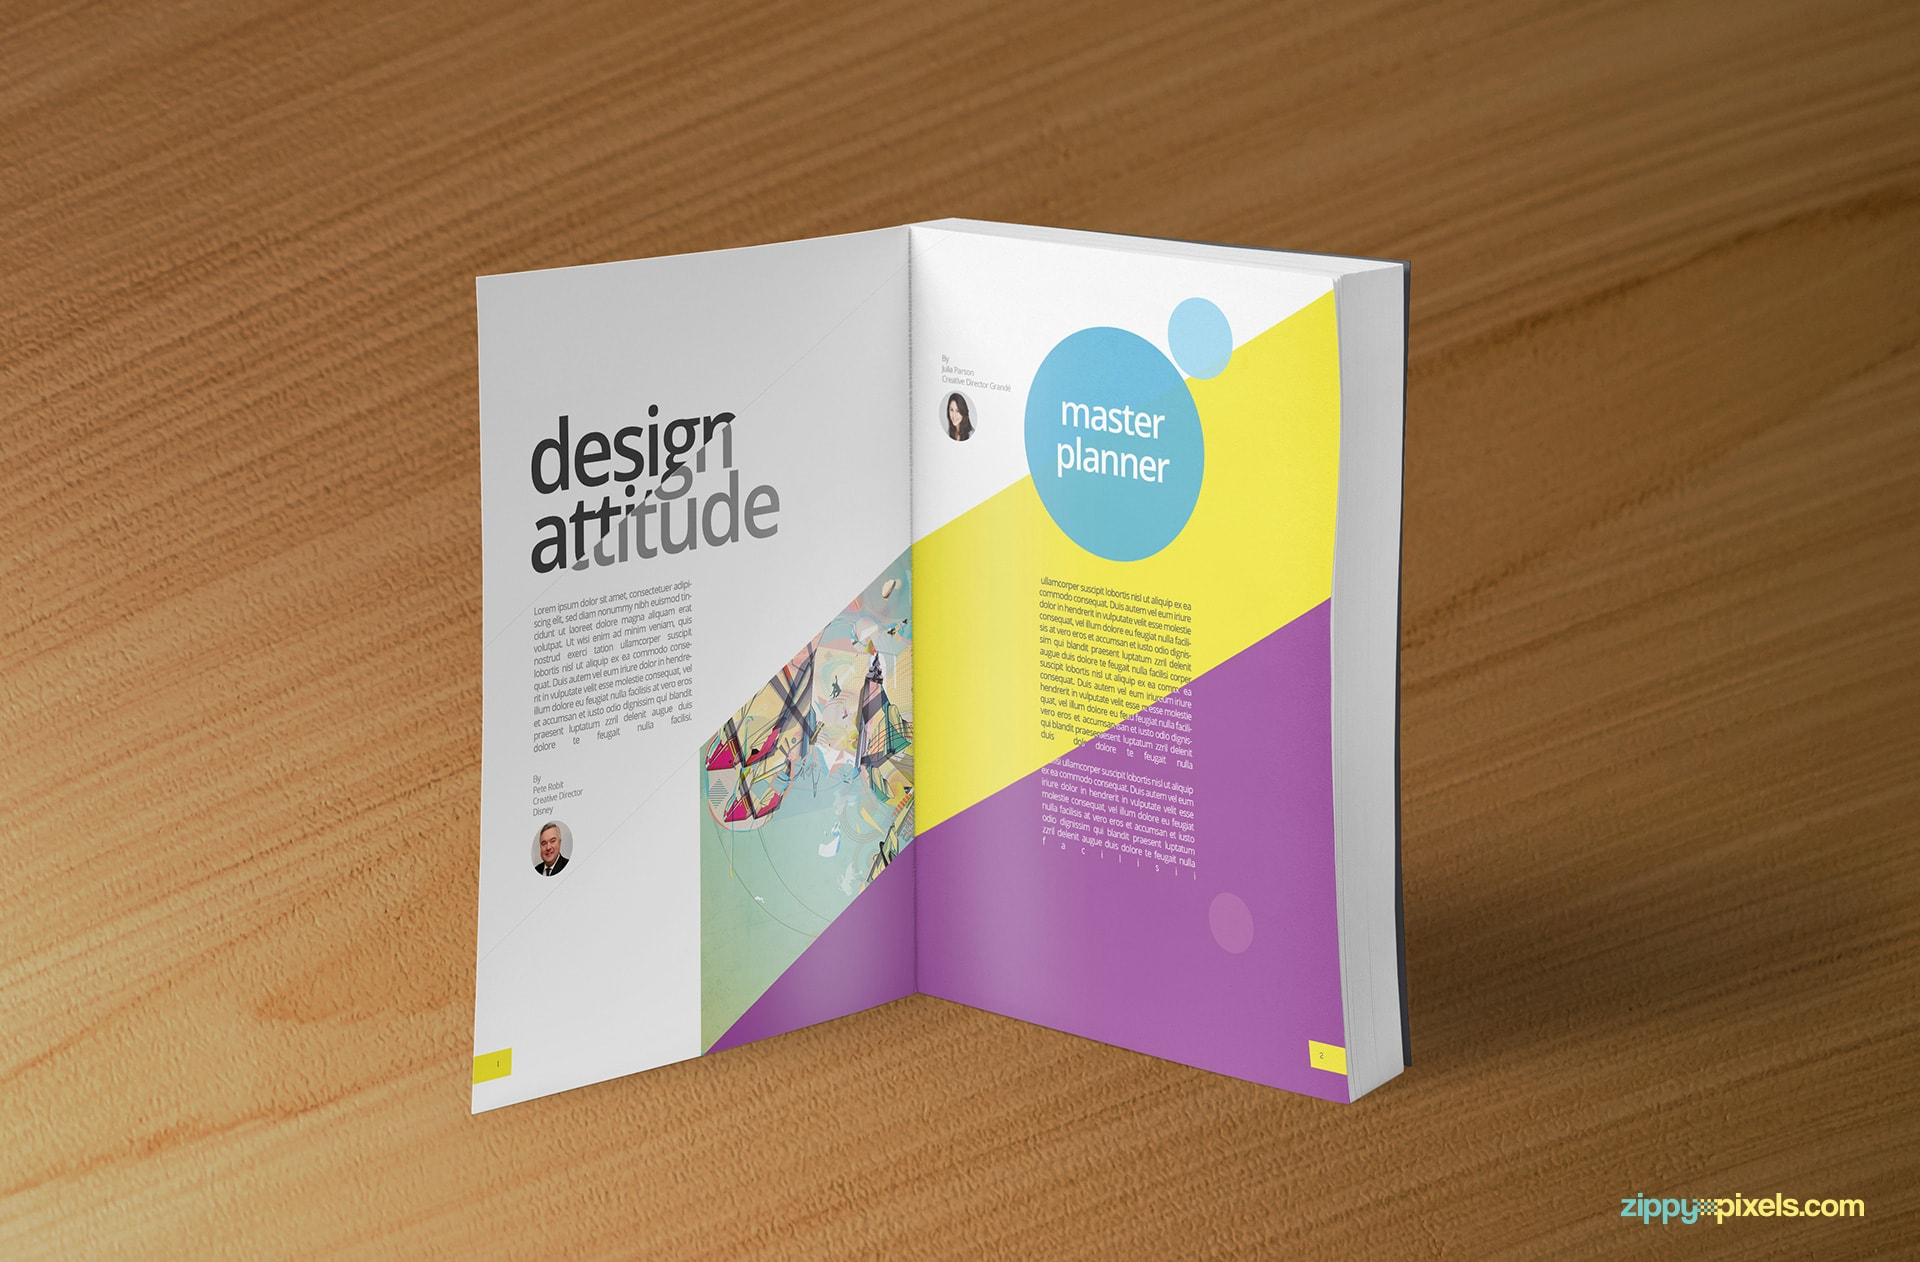 soft-cover-book-mockup-open-first-page